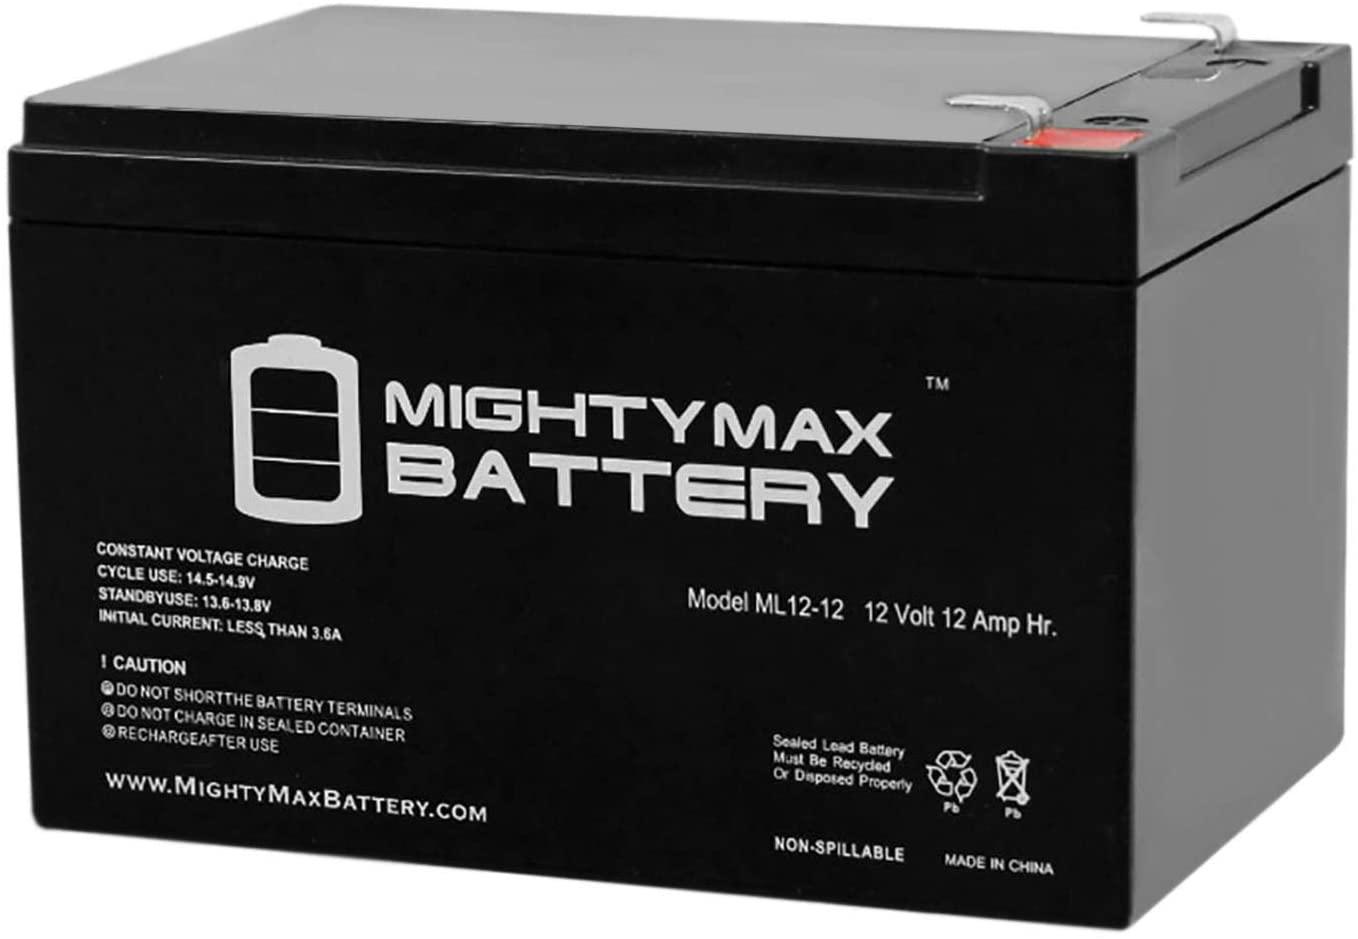 Mighty Max Battery ML12-12 - 12V 12AH F2 Battery Replaces Mity-Mite Jump Starter Charger XP750 Brand Product